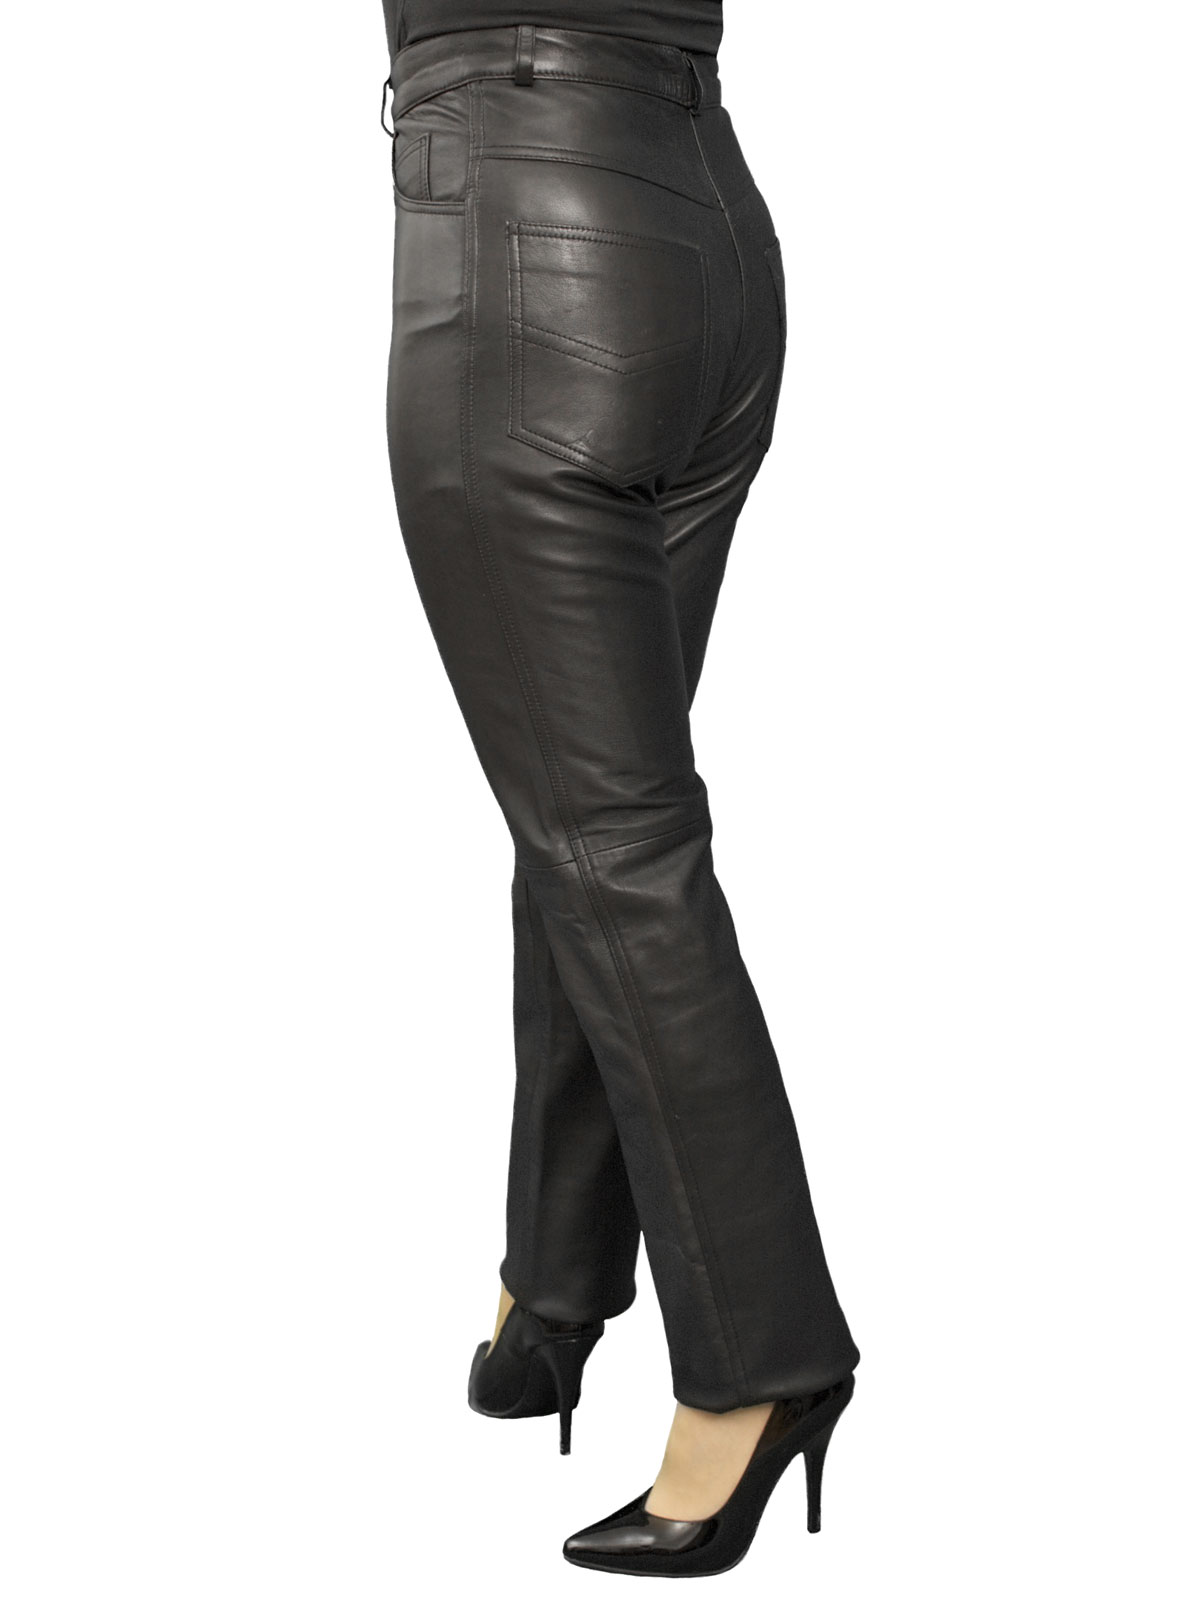 Women High Waisted Leather Trousers Black Pink White Khaki Leather Look Stretch Jeans Size 8 10 12 14 16 £ Prime ladies Sexy Black leather look stretch trousers jeans Biker Goth style 6 (M UK 10 Waist 30